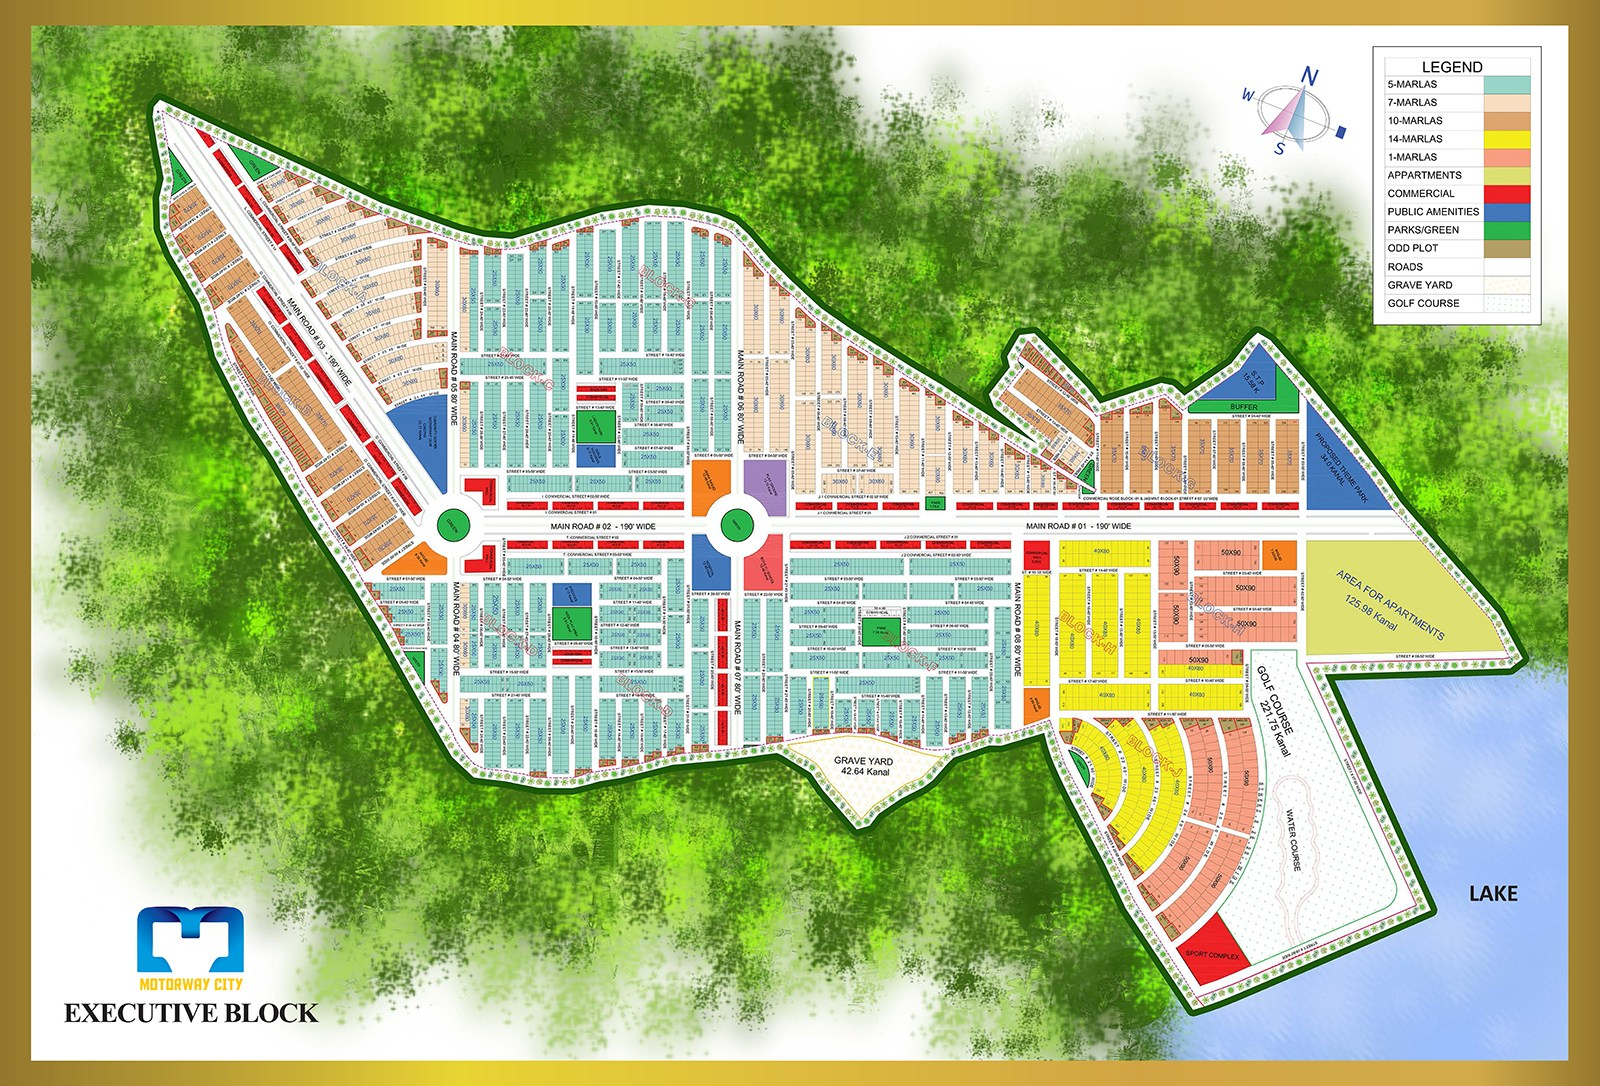 Motorway City Islamabad - Executive Block Map